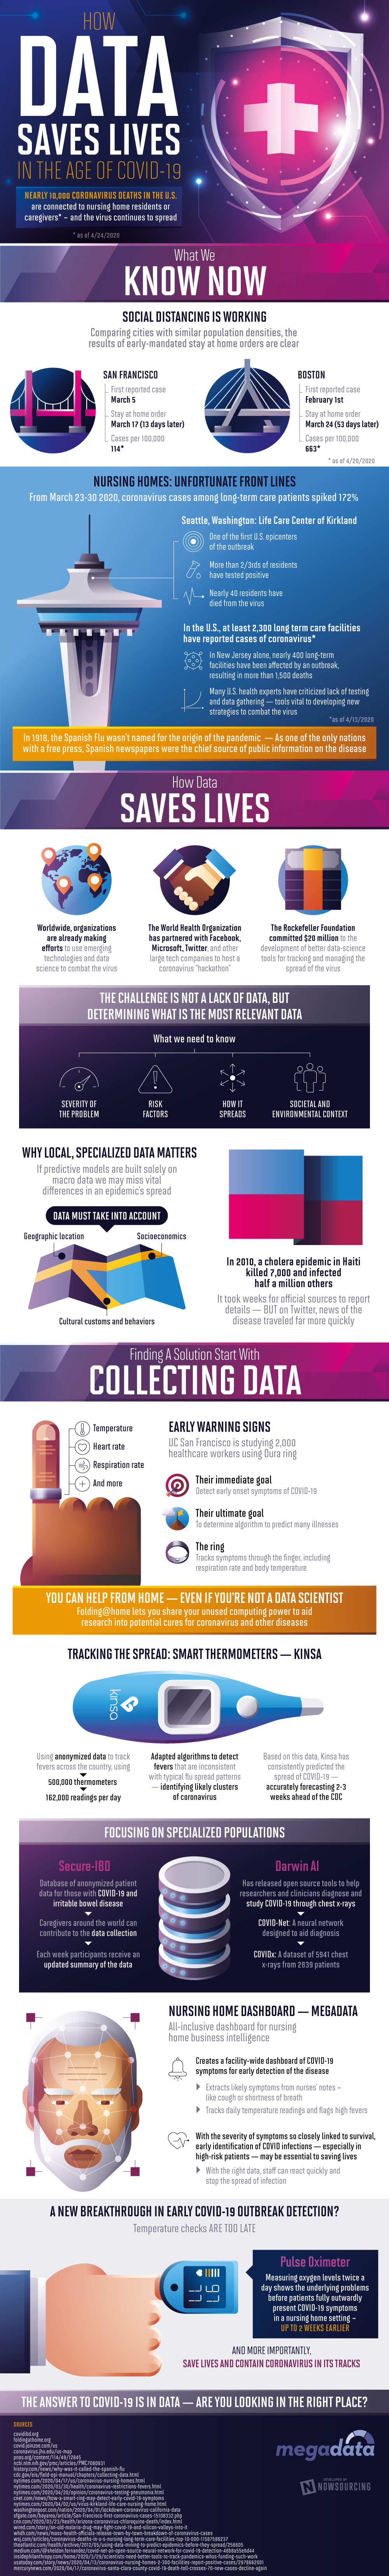 How Data Saves Lives In The Age Of COVID-19 #infographic #Saftey #Data